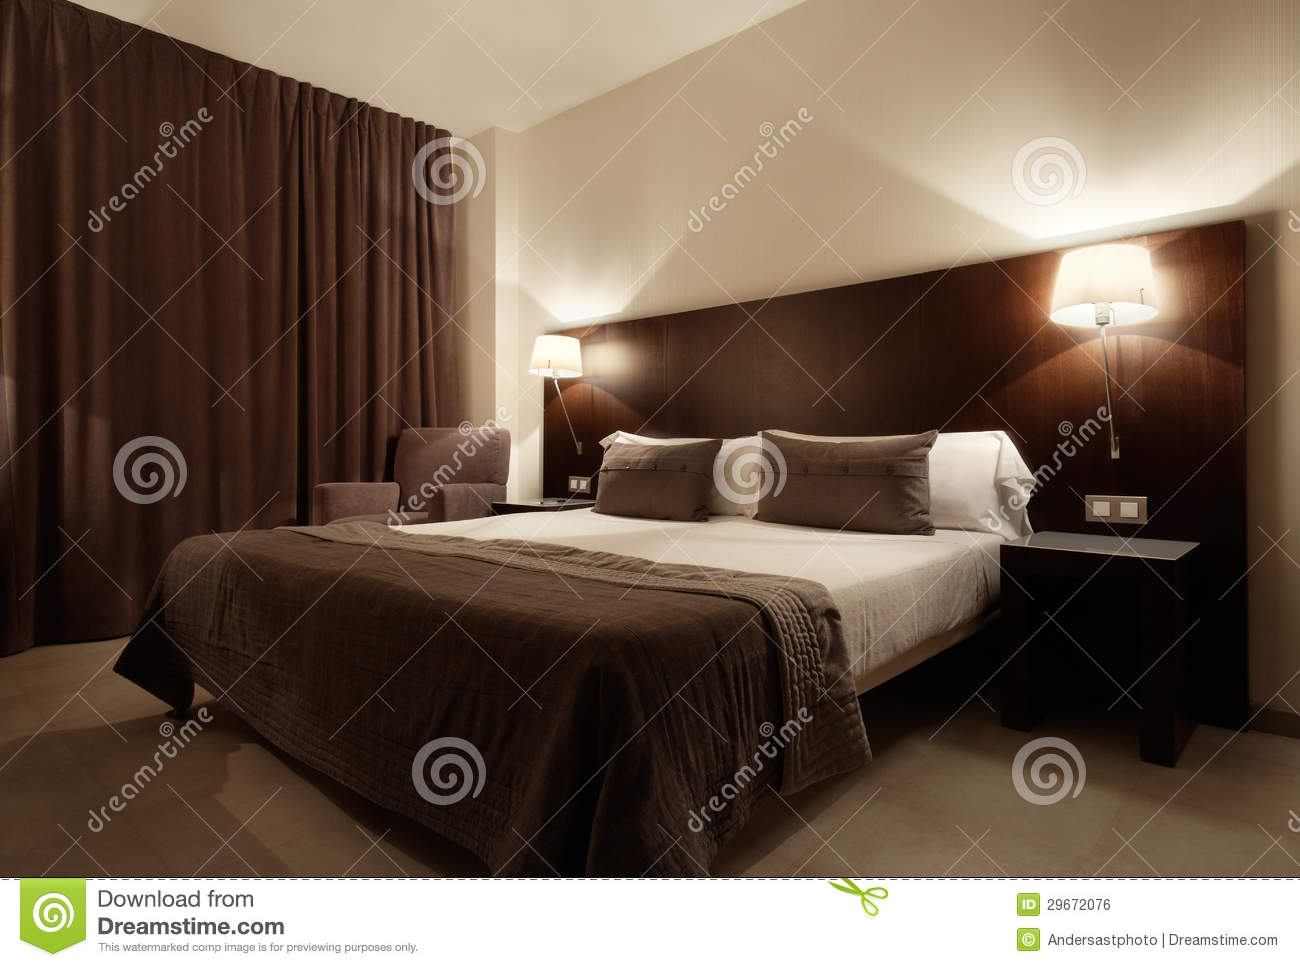 Chambre coucher de luxe moderne photo stock image du for Photo de chambre a coucher